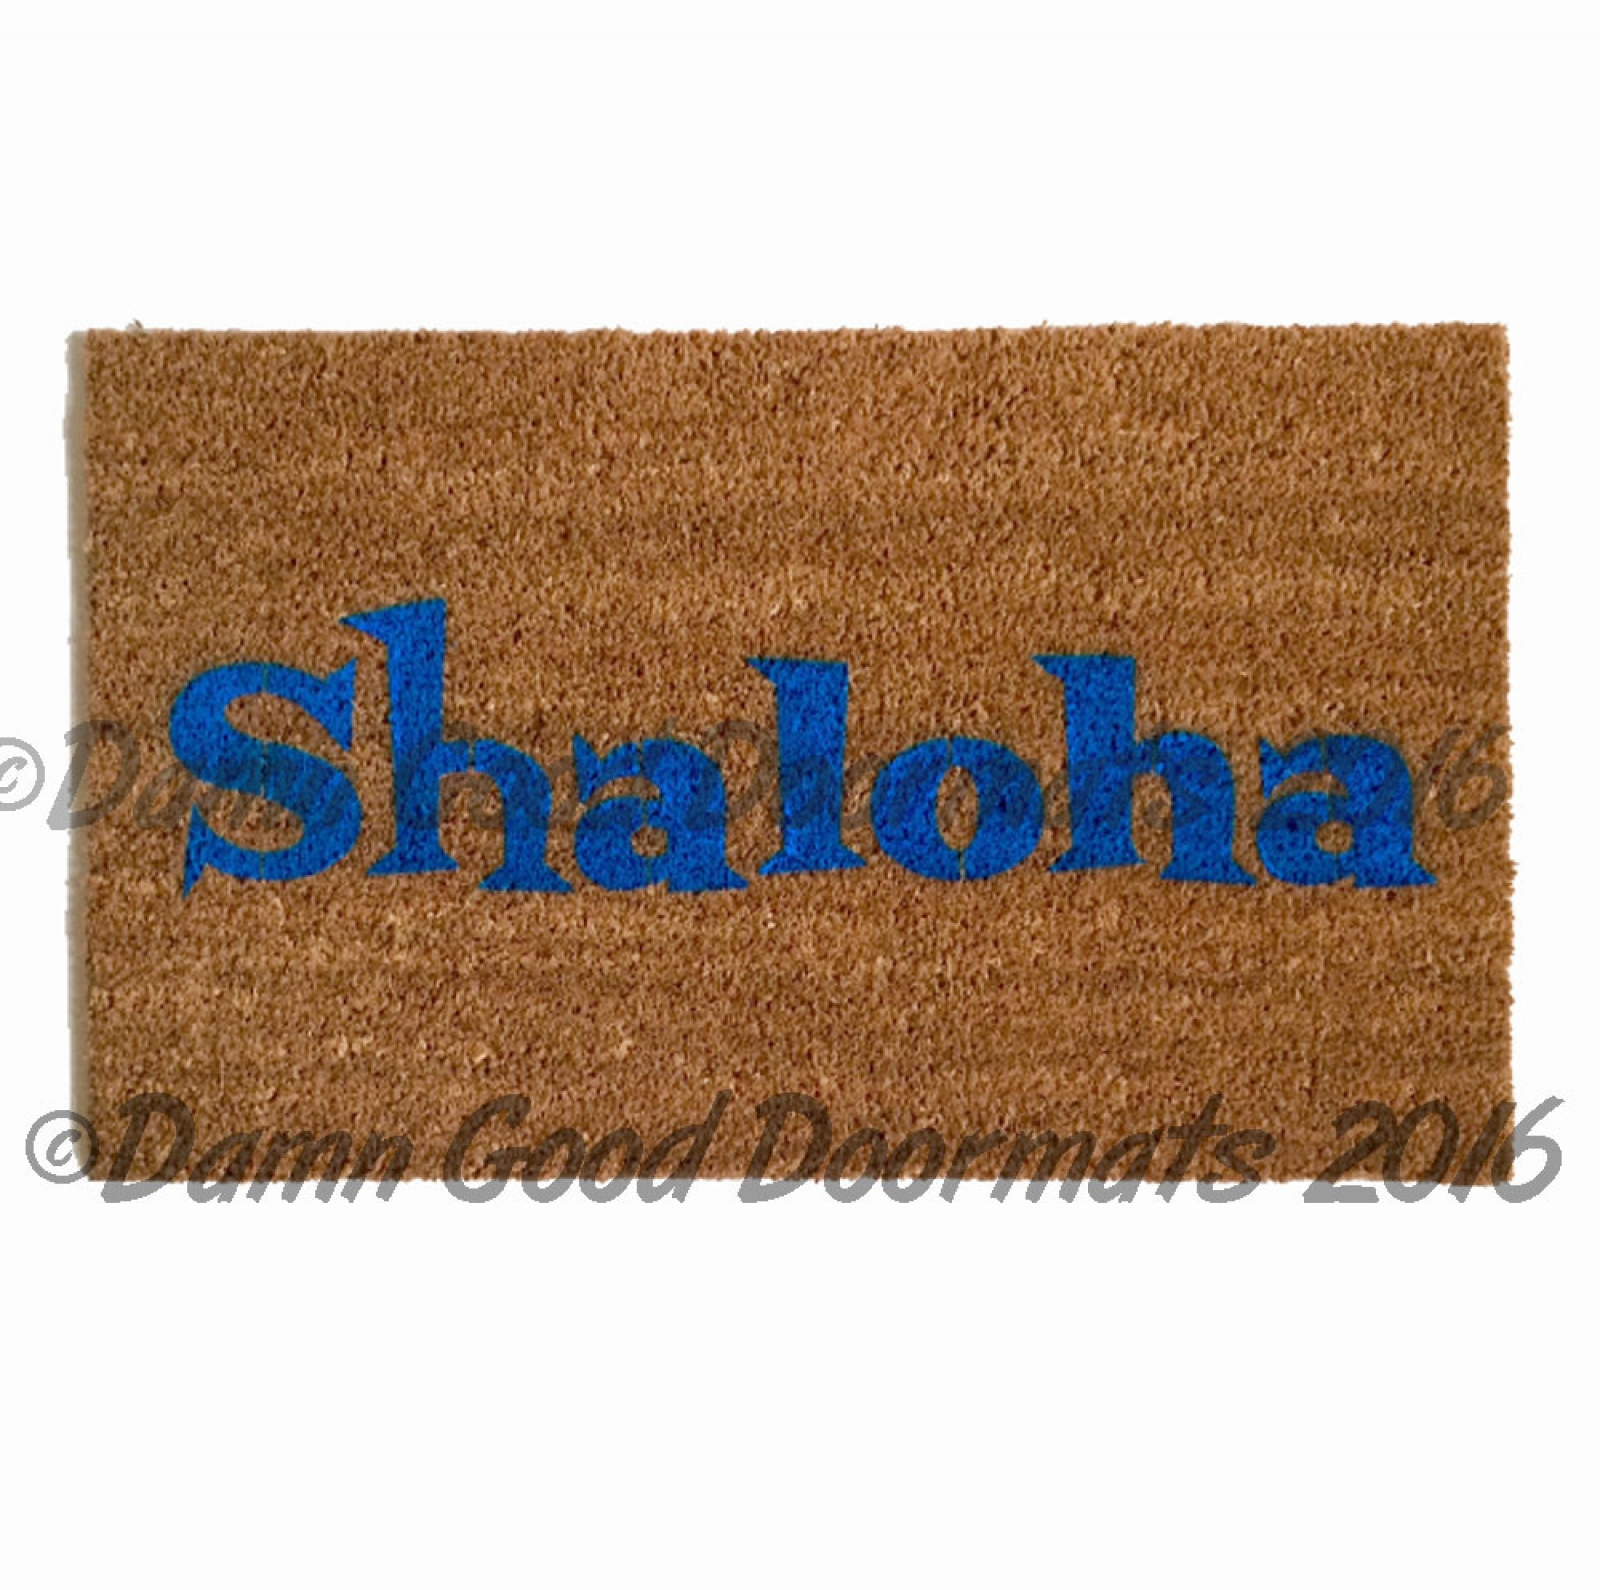 Dog Rug To Catch Dirt: Schmutz! Yiddish For Dirt! Wipe Your Futz- Lose The